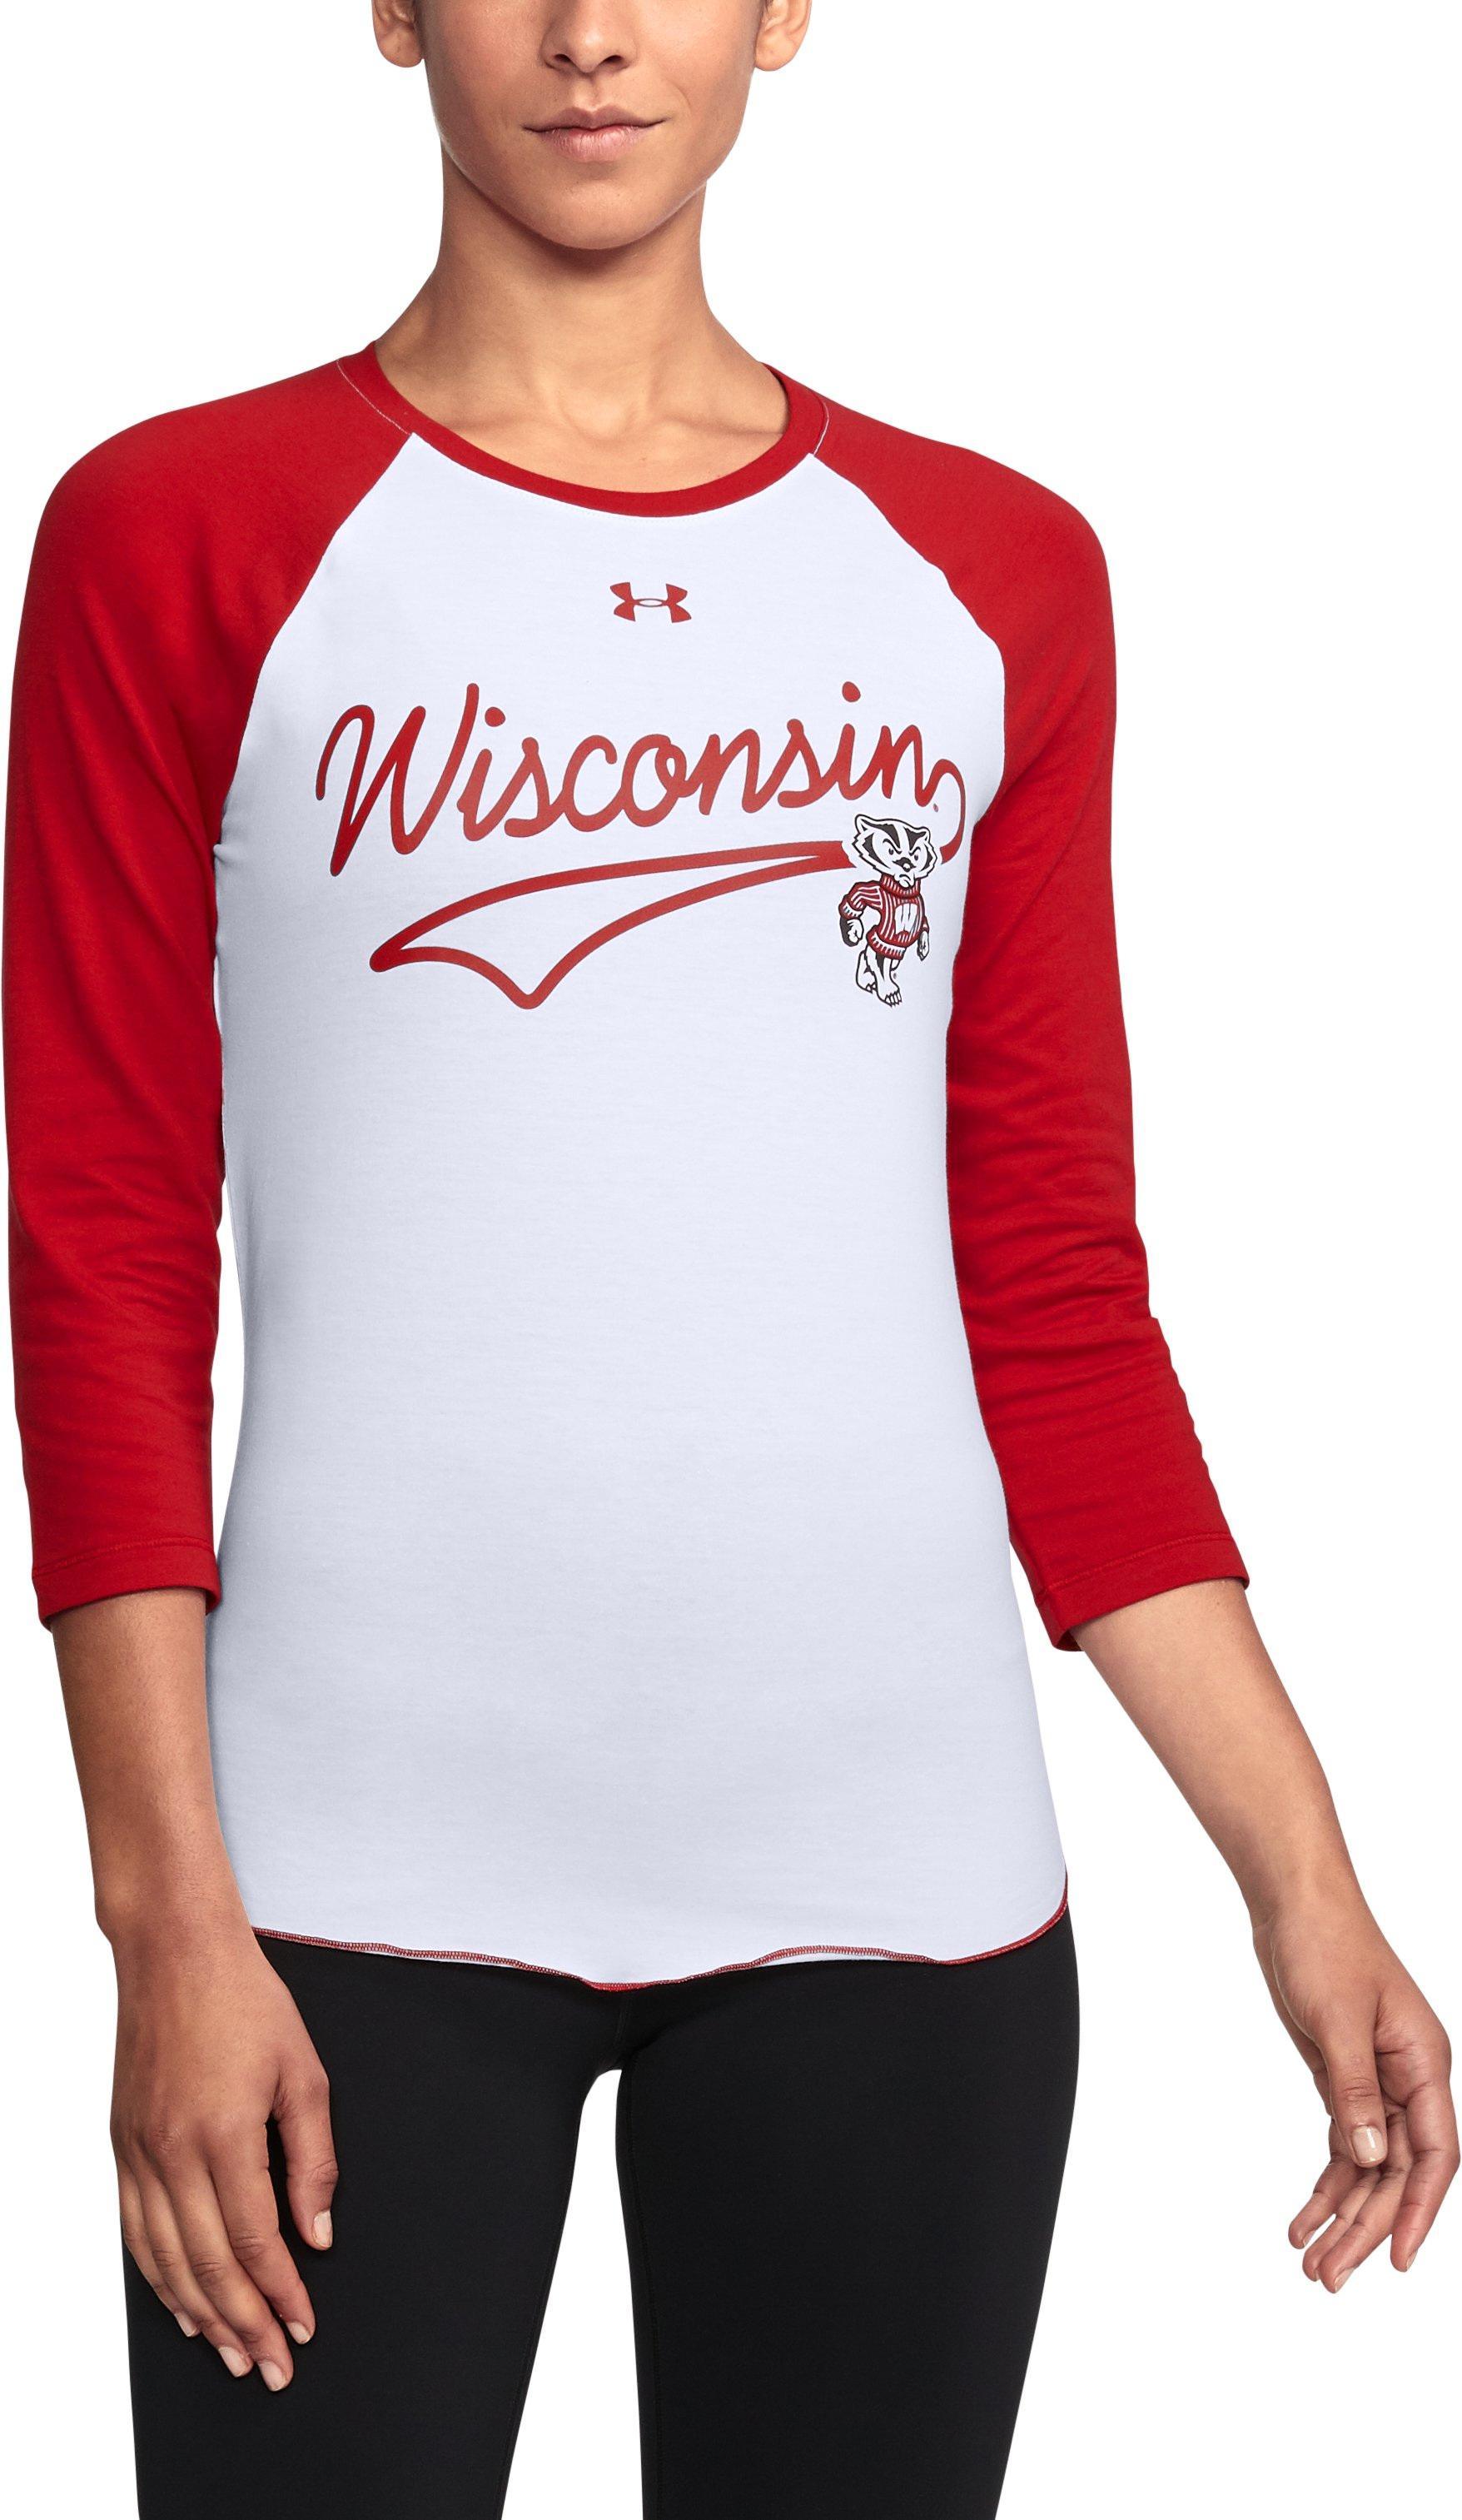 Women's Wisconsin Baseball T-Shirt, Flawless